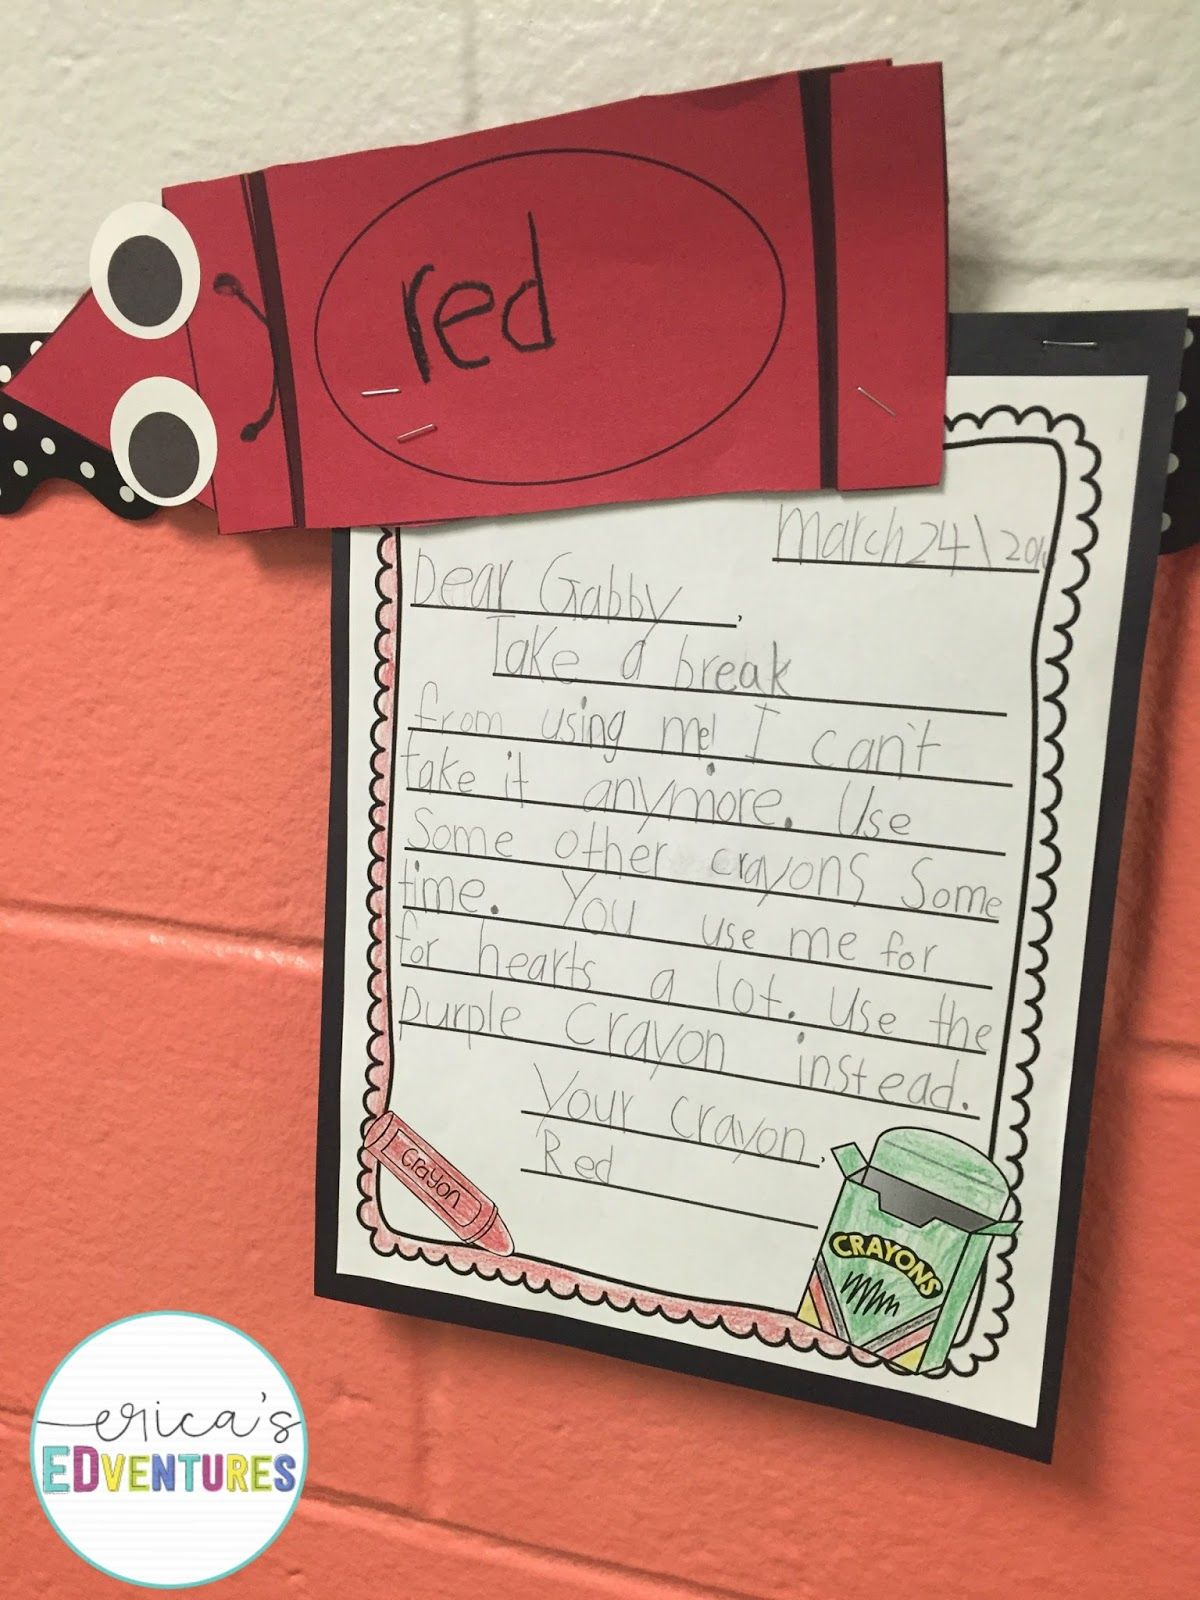 In my first grade classroom we have been working on our letter